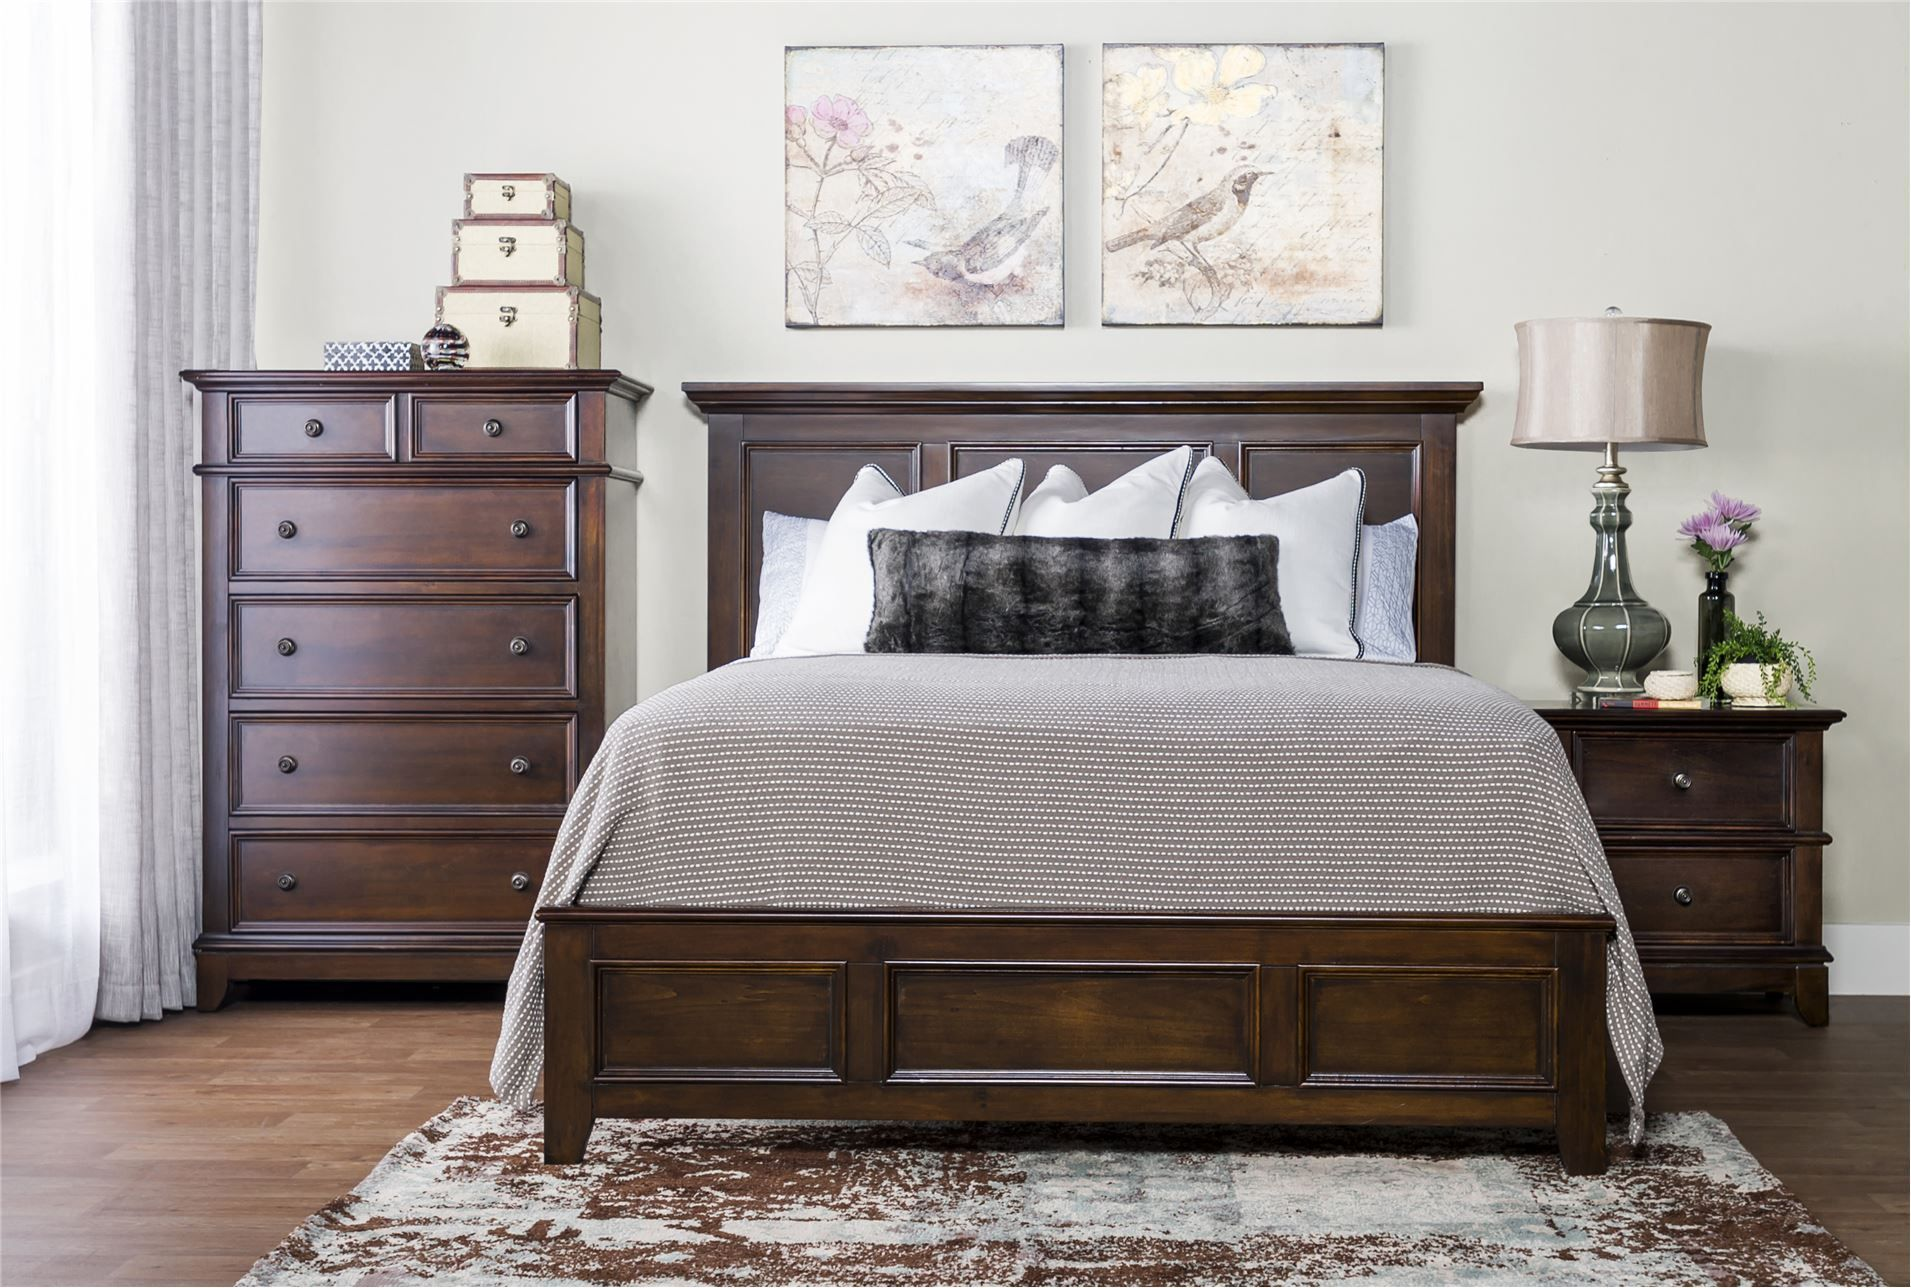 Dalton Queen Panel Bed | Bedroom remodeling, Bedrooms and Living ...